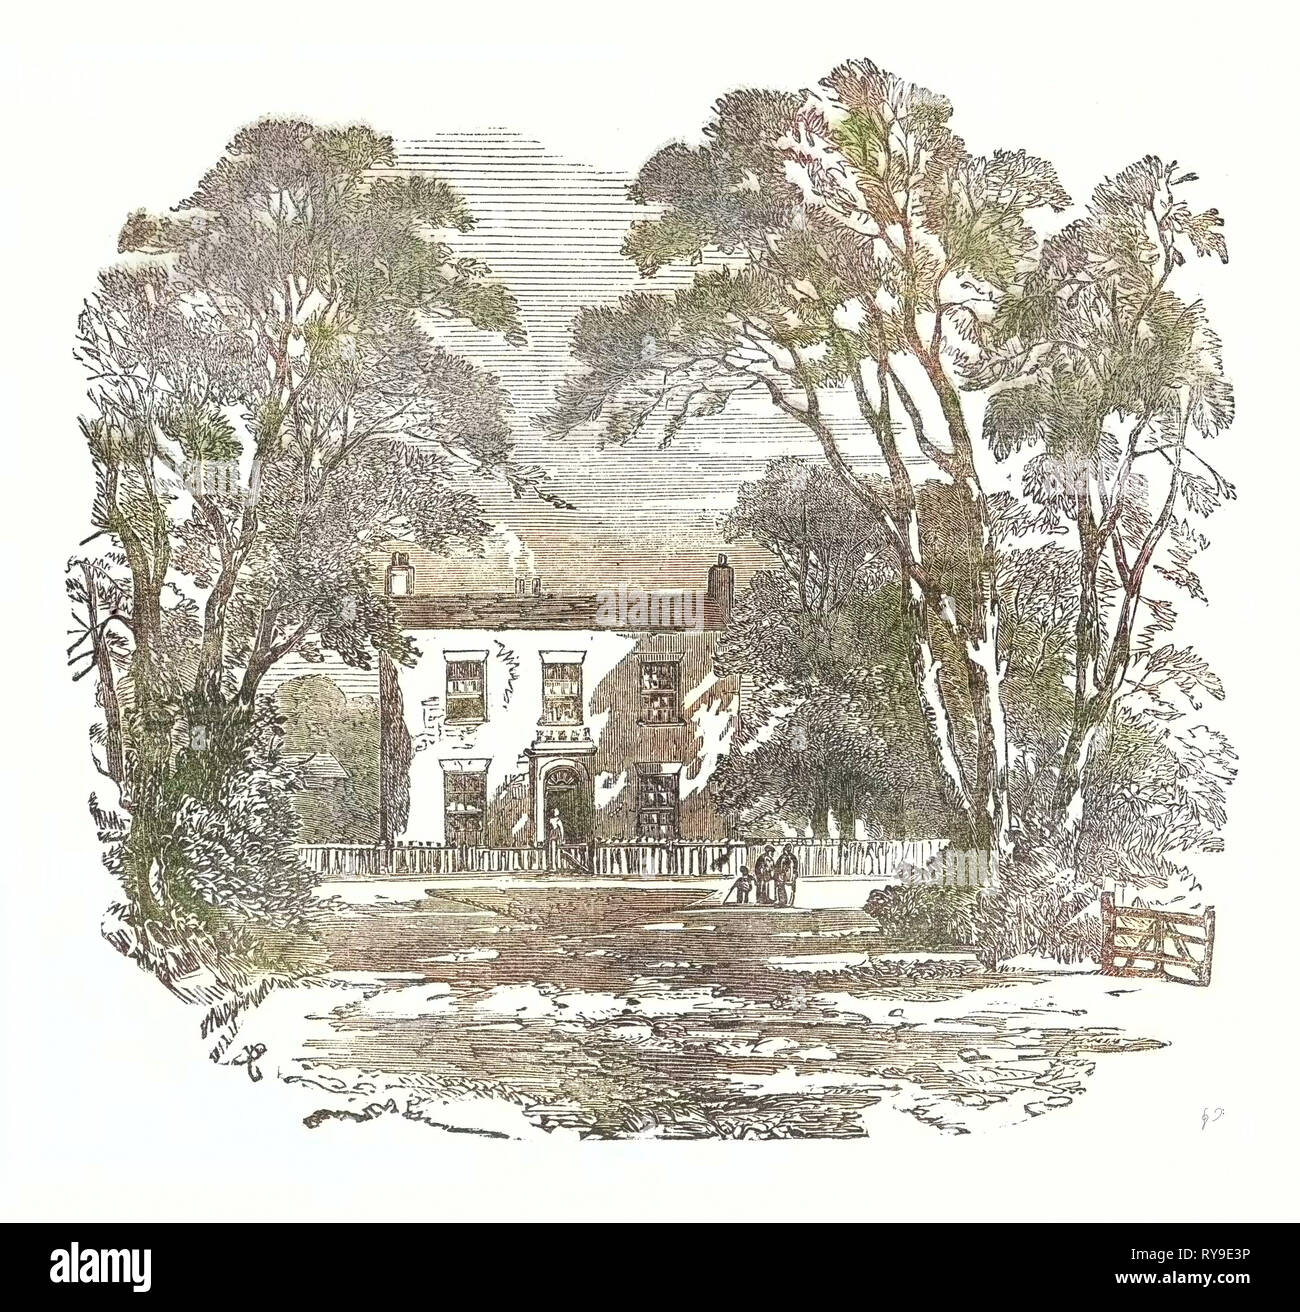 Miss Mitford's Cottage, Swallowfield, Berks. UK, Britain, British, Europe, United Kingdom, Great Britain, European. Mary Russell Mitford, 16 December 1787  10 January 1855, Was an English Author and Dramatist - Stock Image